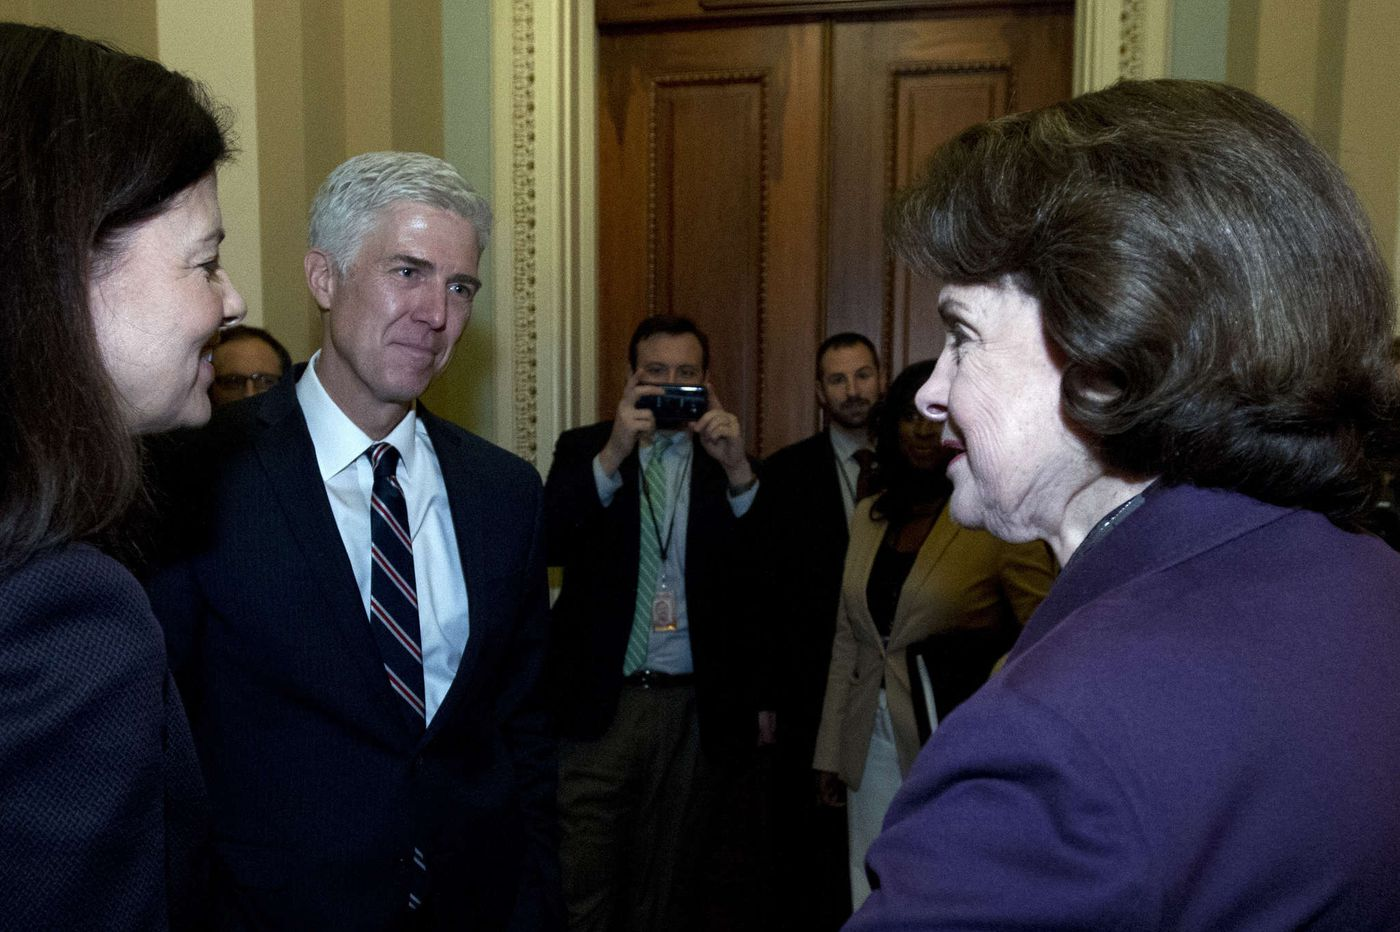 Commentary: Gorsuch meets the highest standards